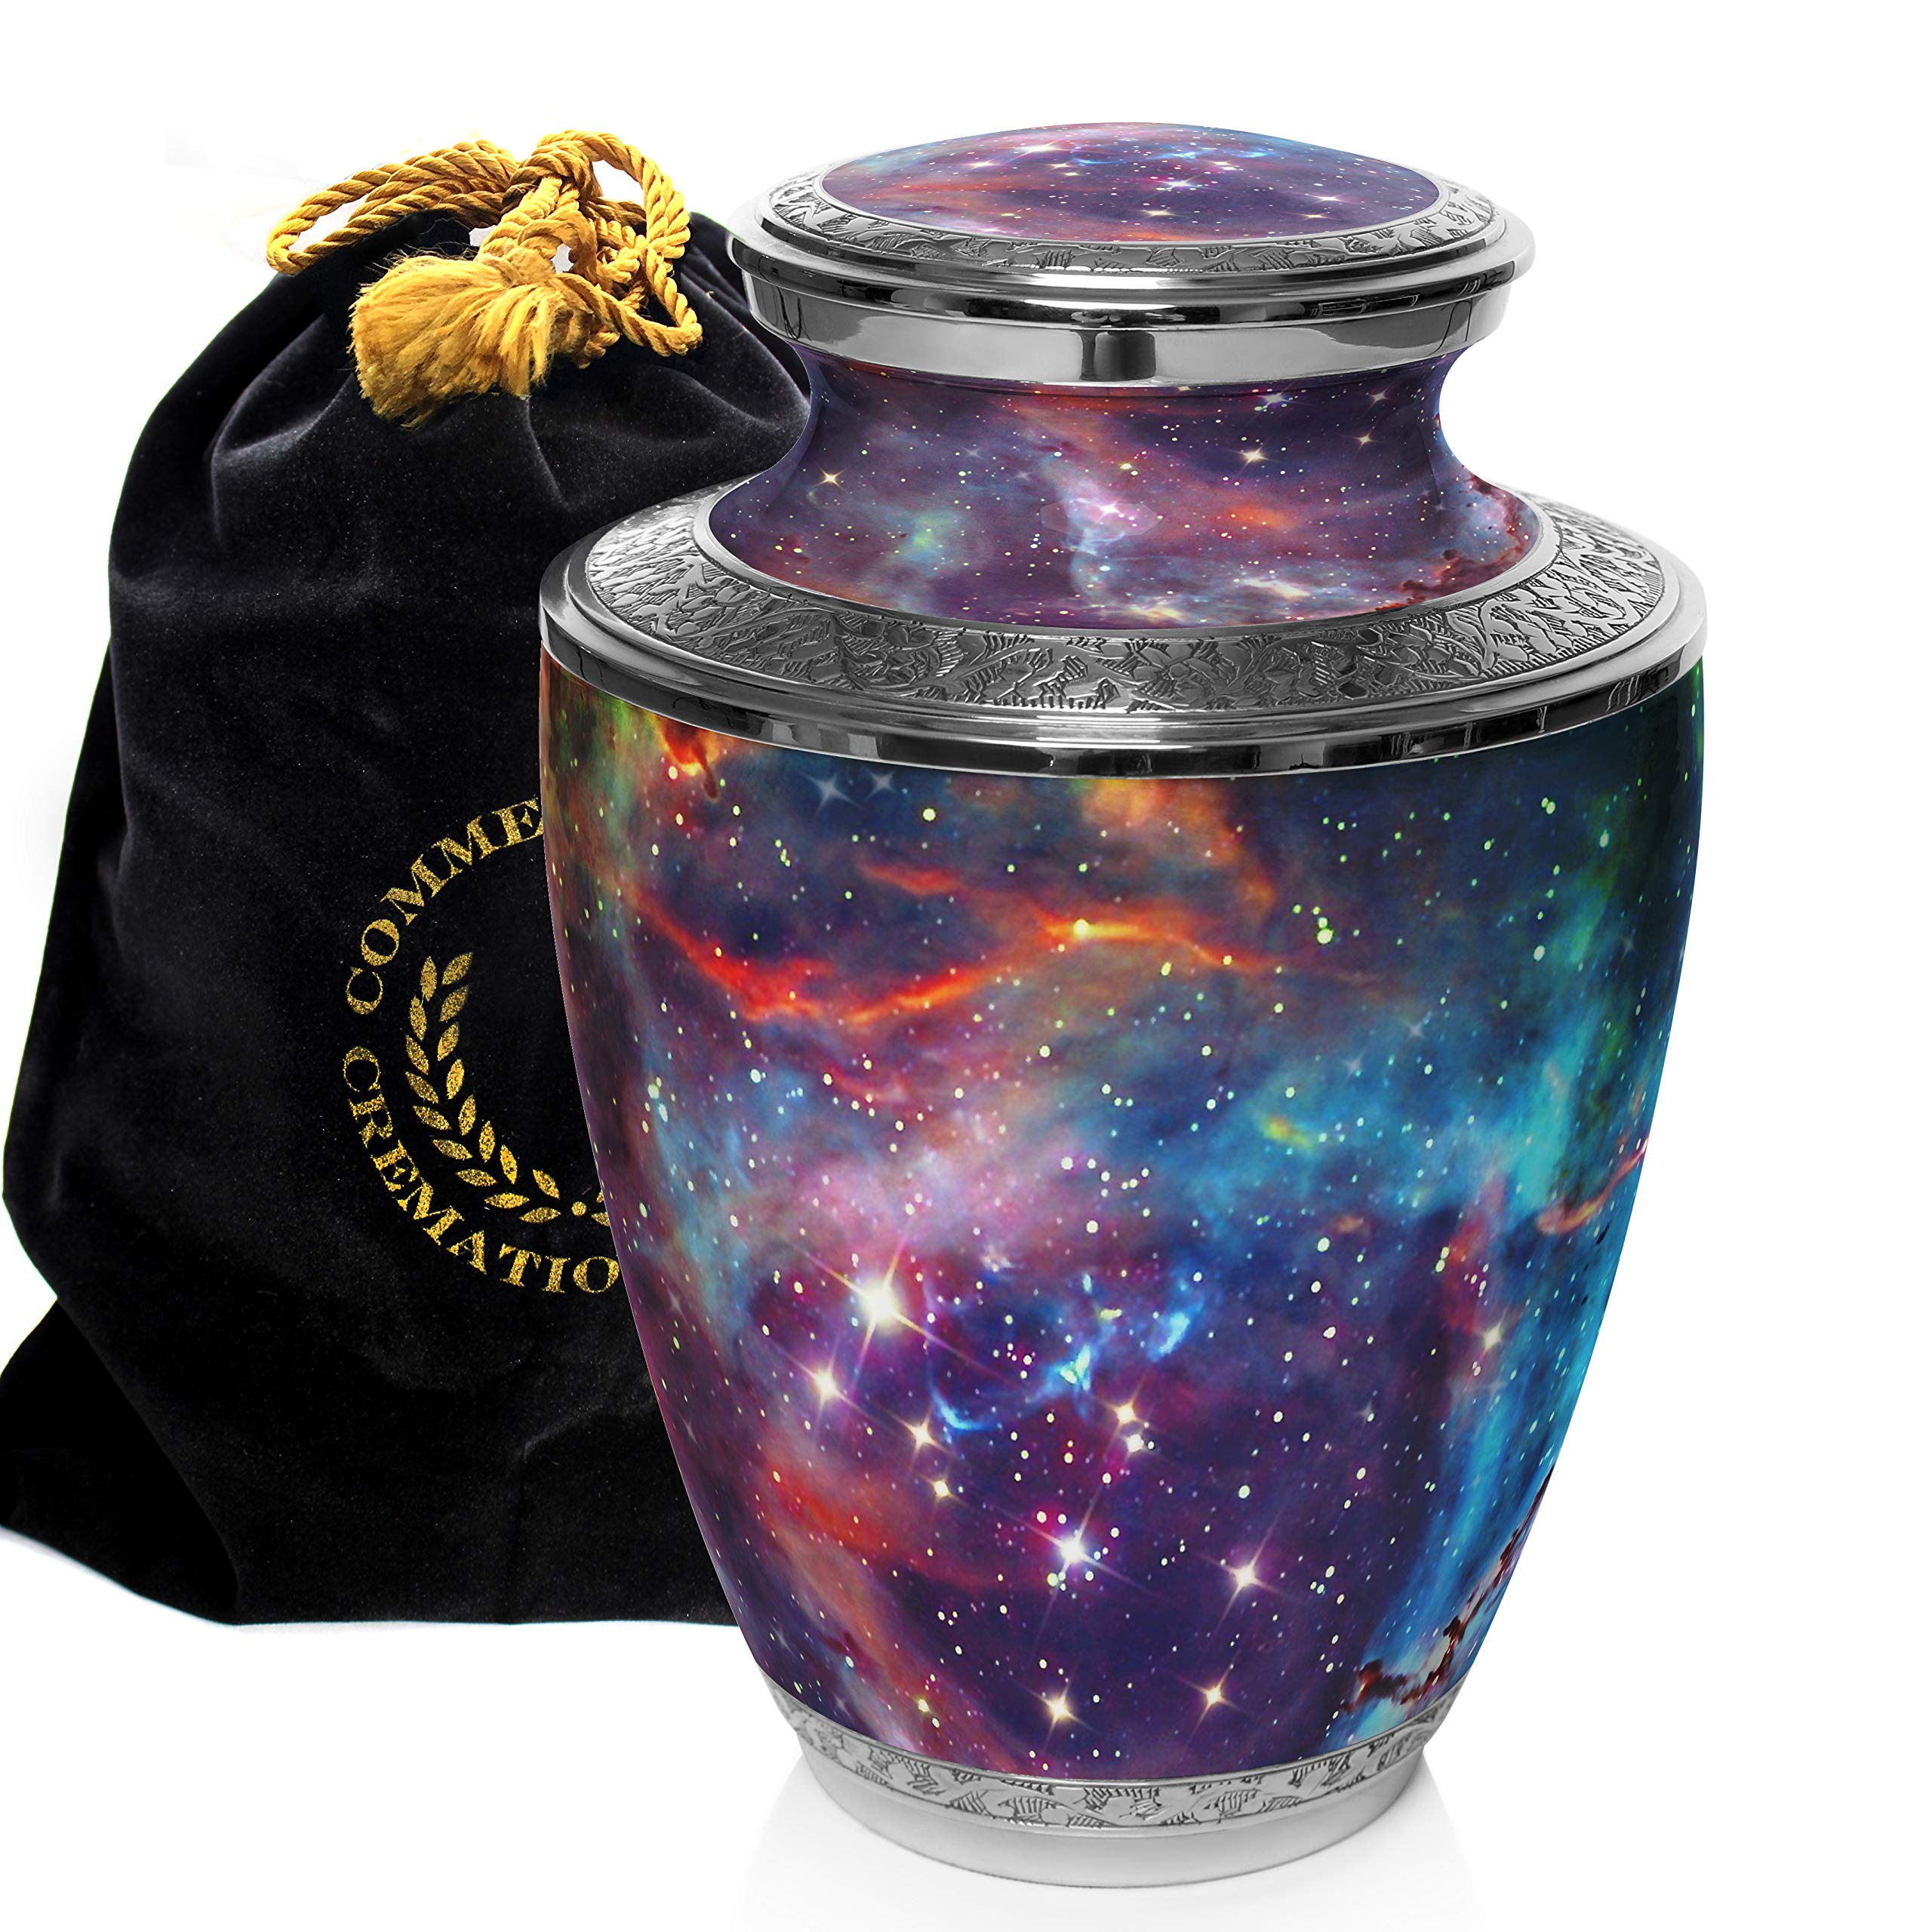 Cosmic Galaxy Universe Cremation Urns for Adult Ashes for Funeral, Niche or Columbarium, 100% Brass, Cremation Urns for Human Ashes Adult 200 Cubic inches (Cosmic Galaxy, Extra Large)